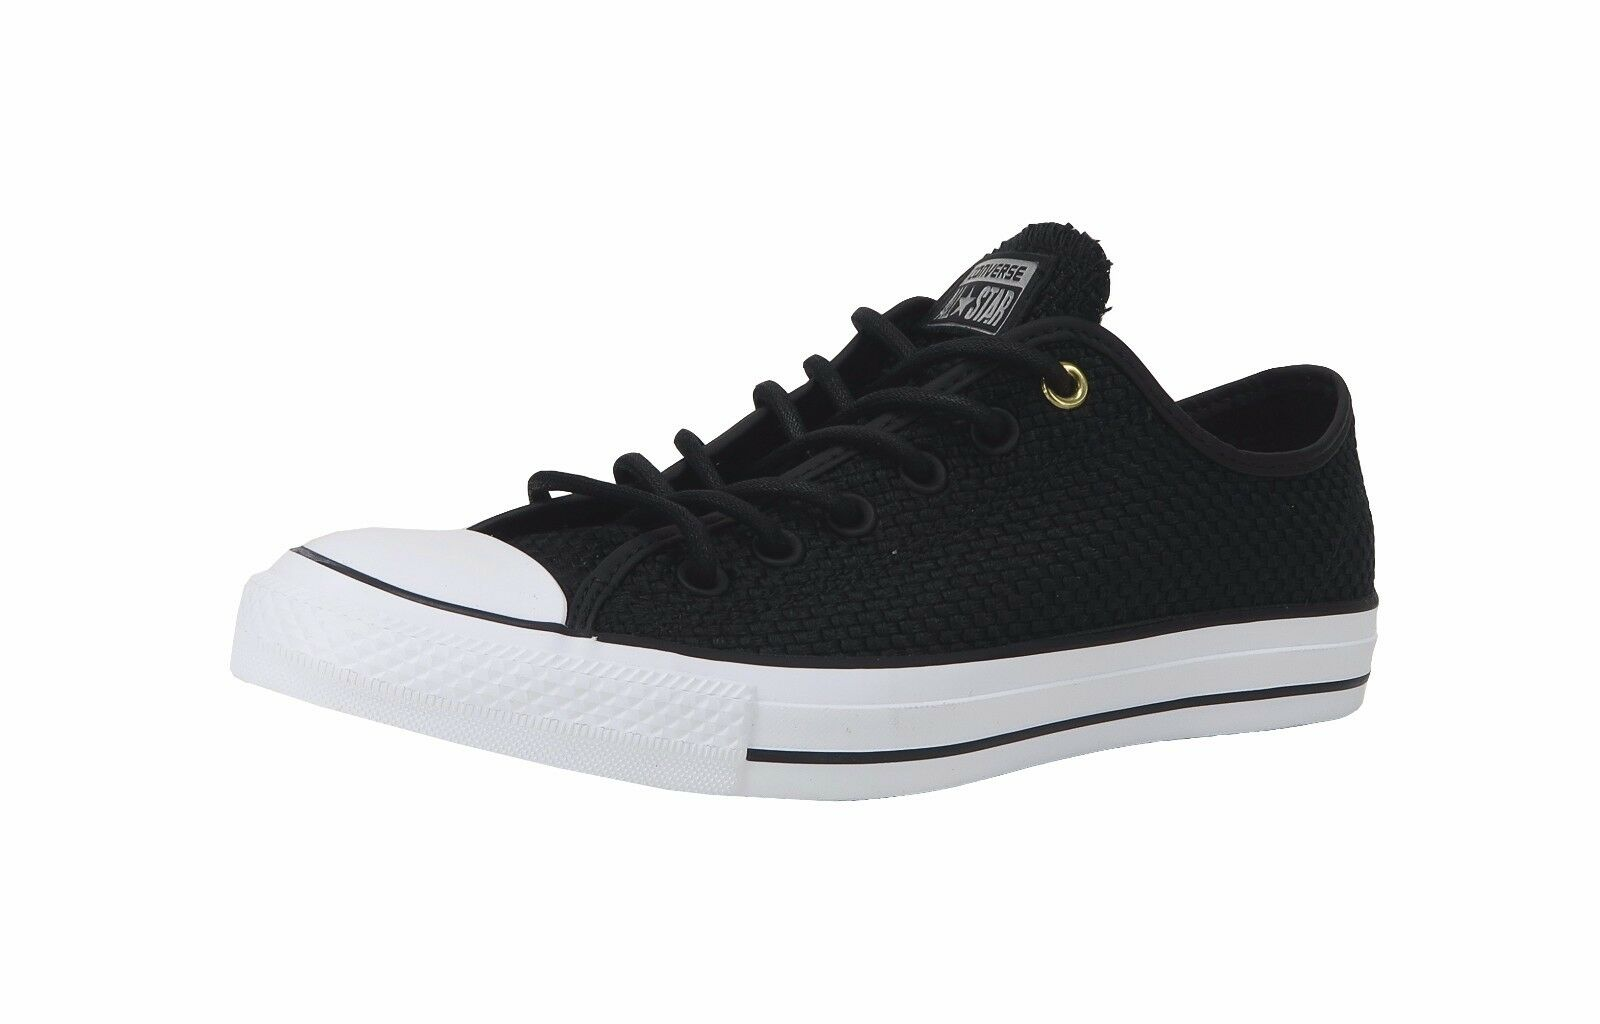 057d5ad51c63 Chuck Taylor Converse Amp Cloth Ct All Star Black 151025c Select ...